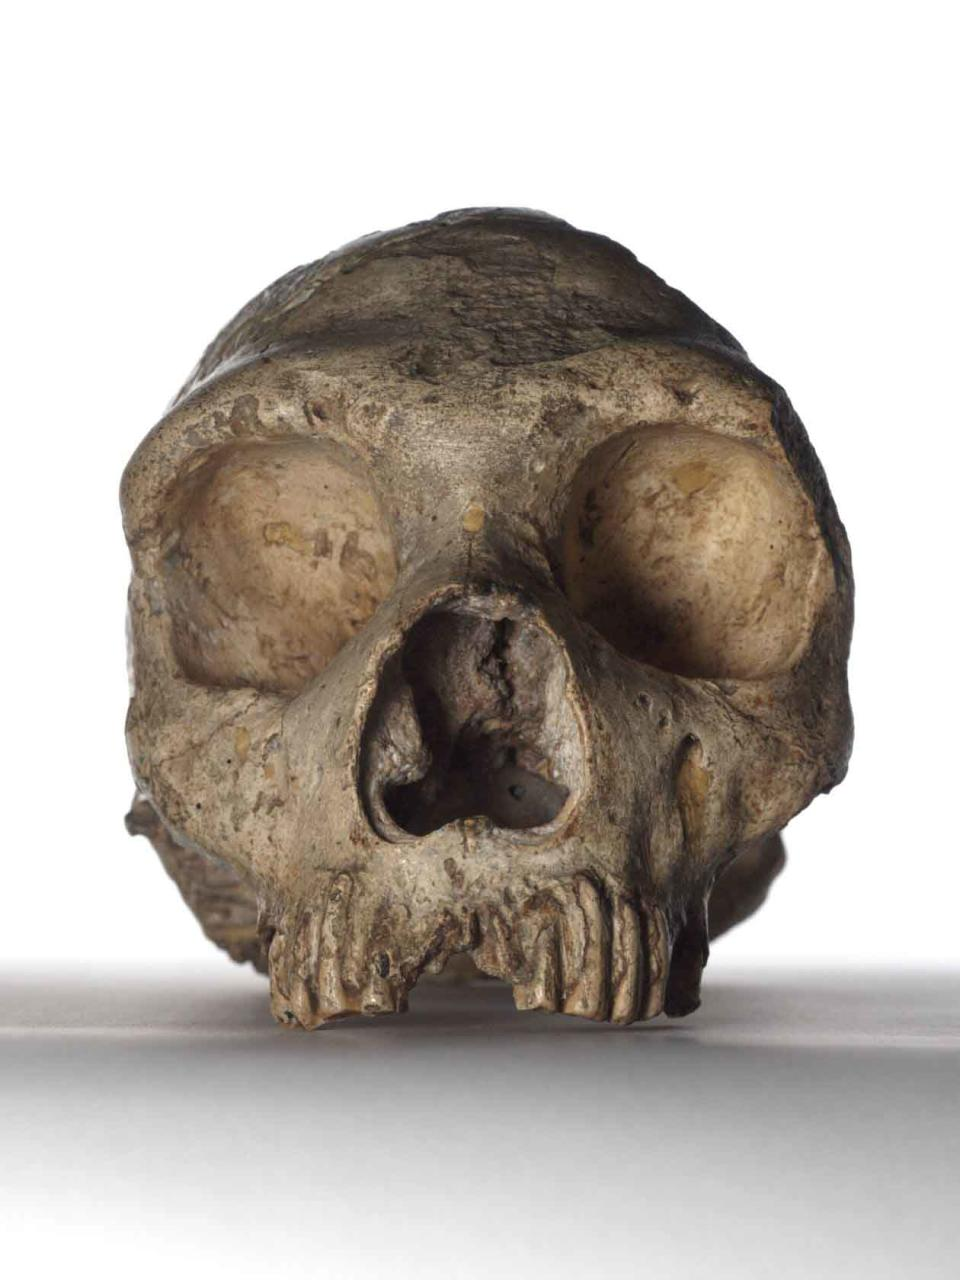 Neanderthal skull – about 50,000 years old, this adult female Neanderthal skull it was the first Neanderthal skull ever discovered. Neanderthals were our closest known relative and this specimen helped to begin the science of palaeoanthropology – the study of ancient humans. (Natural History Museum)